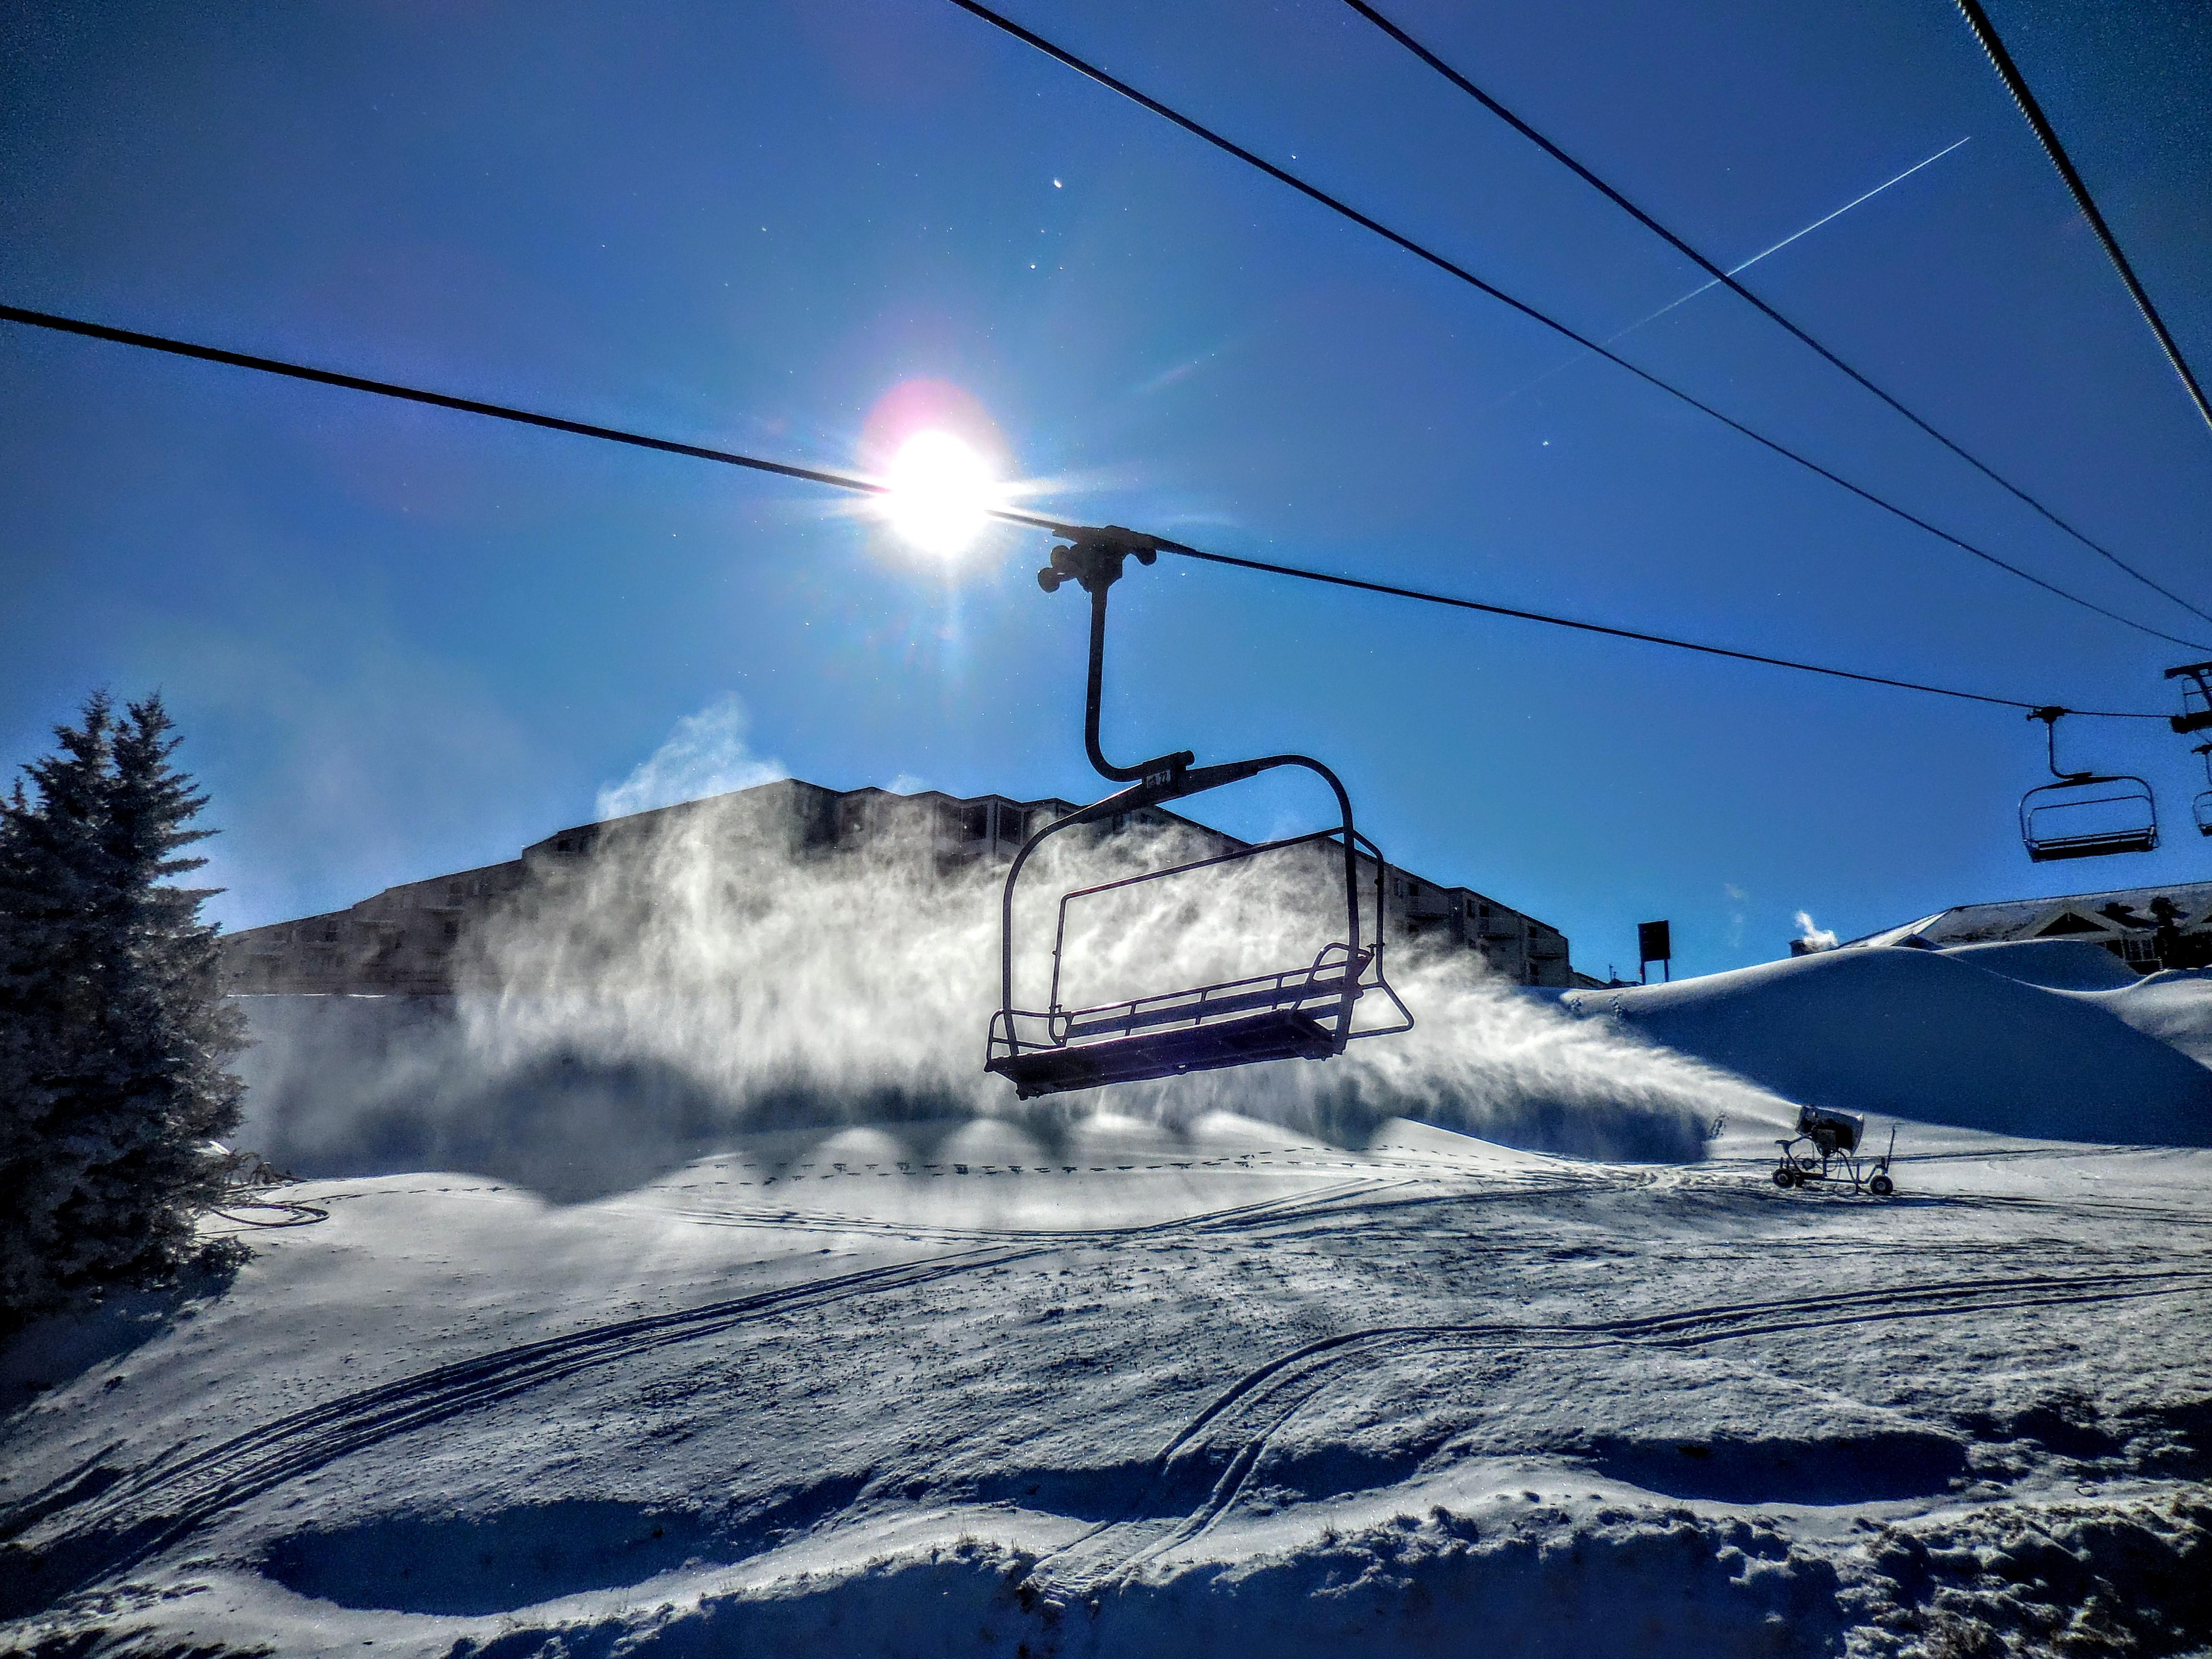 You'll be steps away from the Ballhooter high-speed quad chair lift! CLOSE to the action!